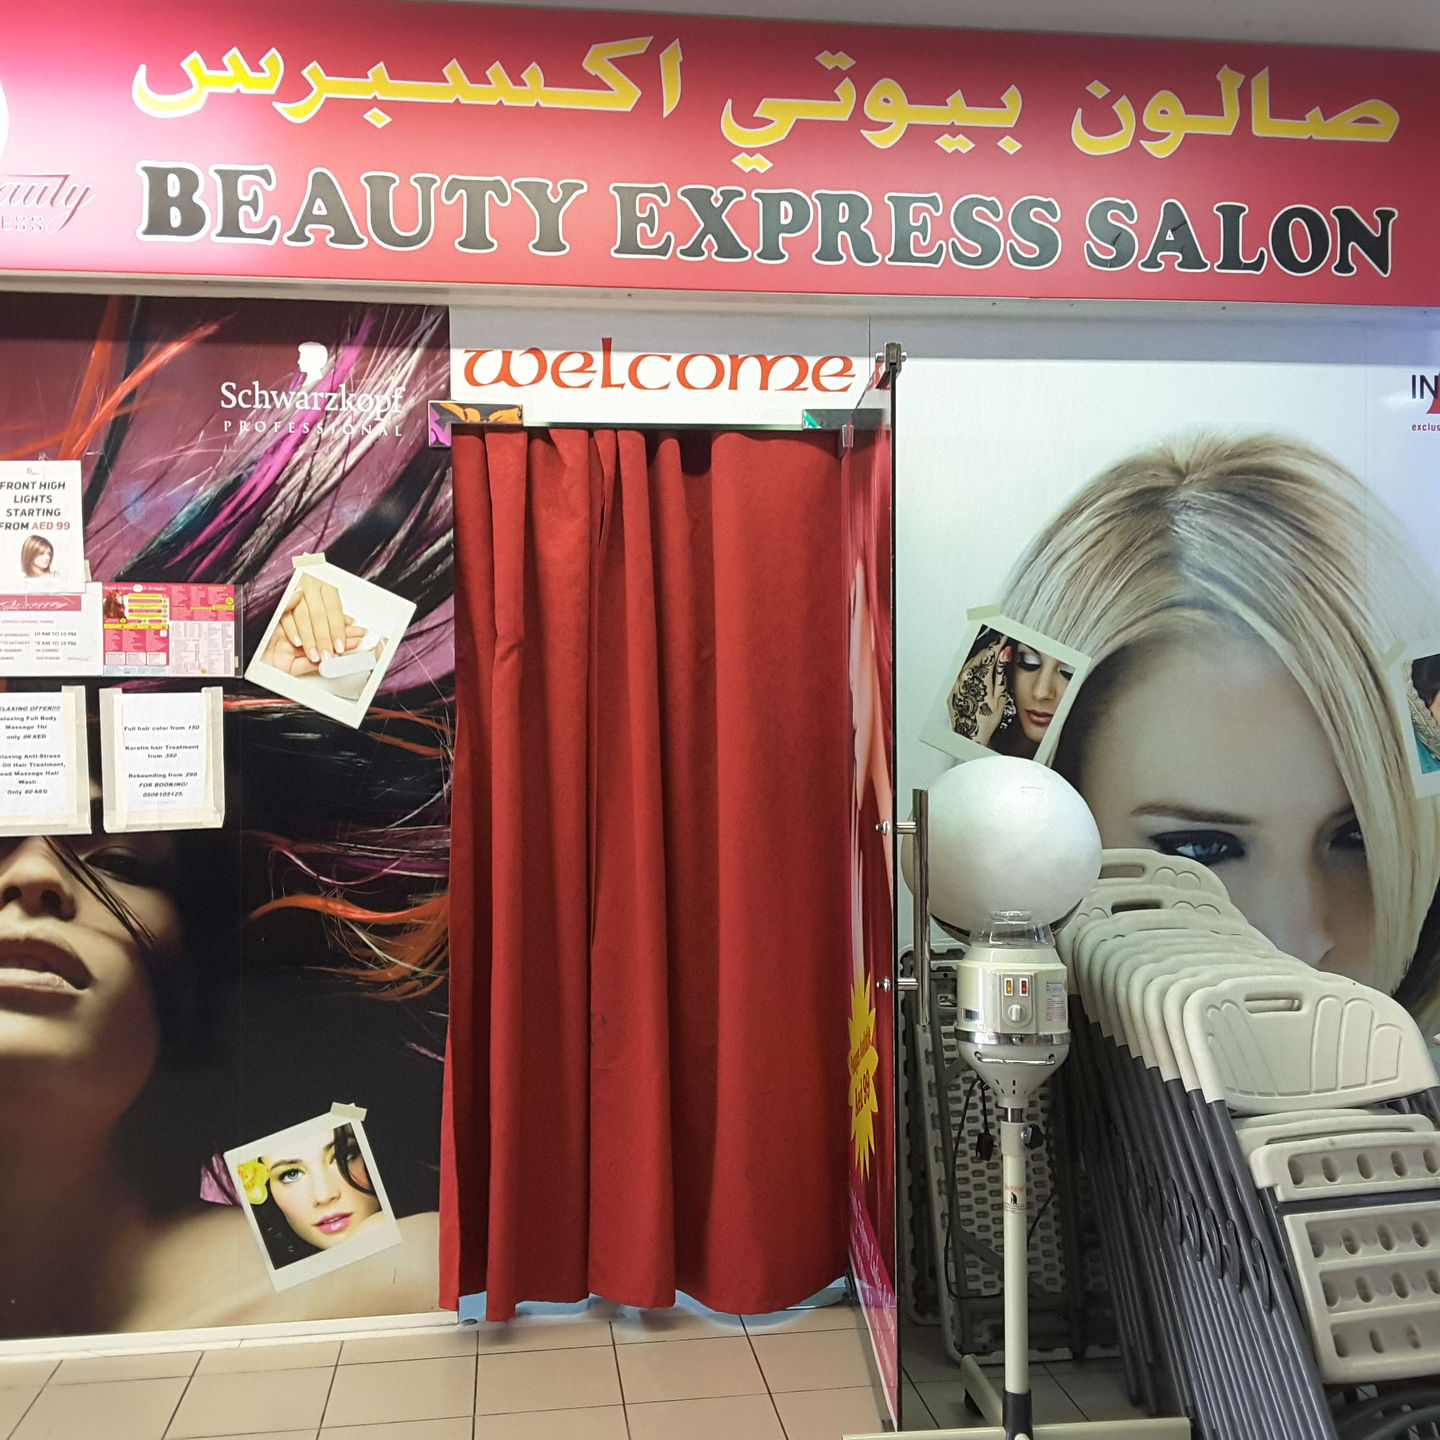 HiDubai-business-beauty-express-salon-beauty-wellness-health-beauty-salons-al-nahda-2-dubai-2